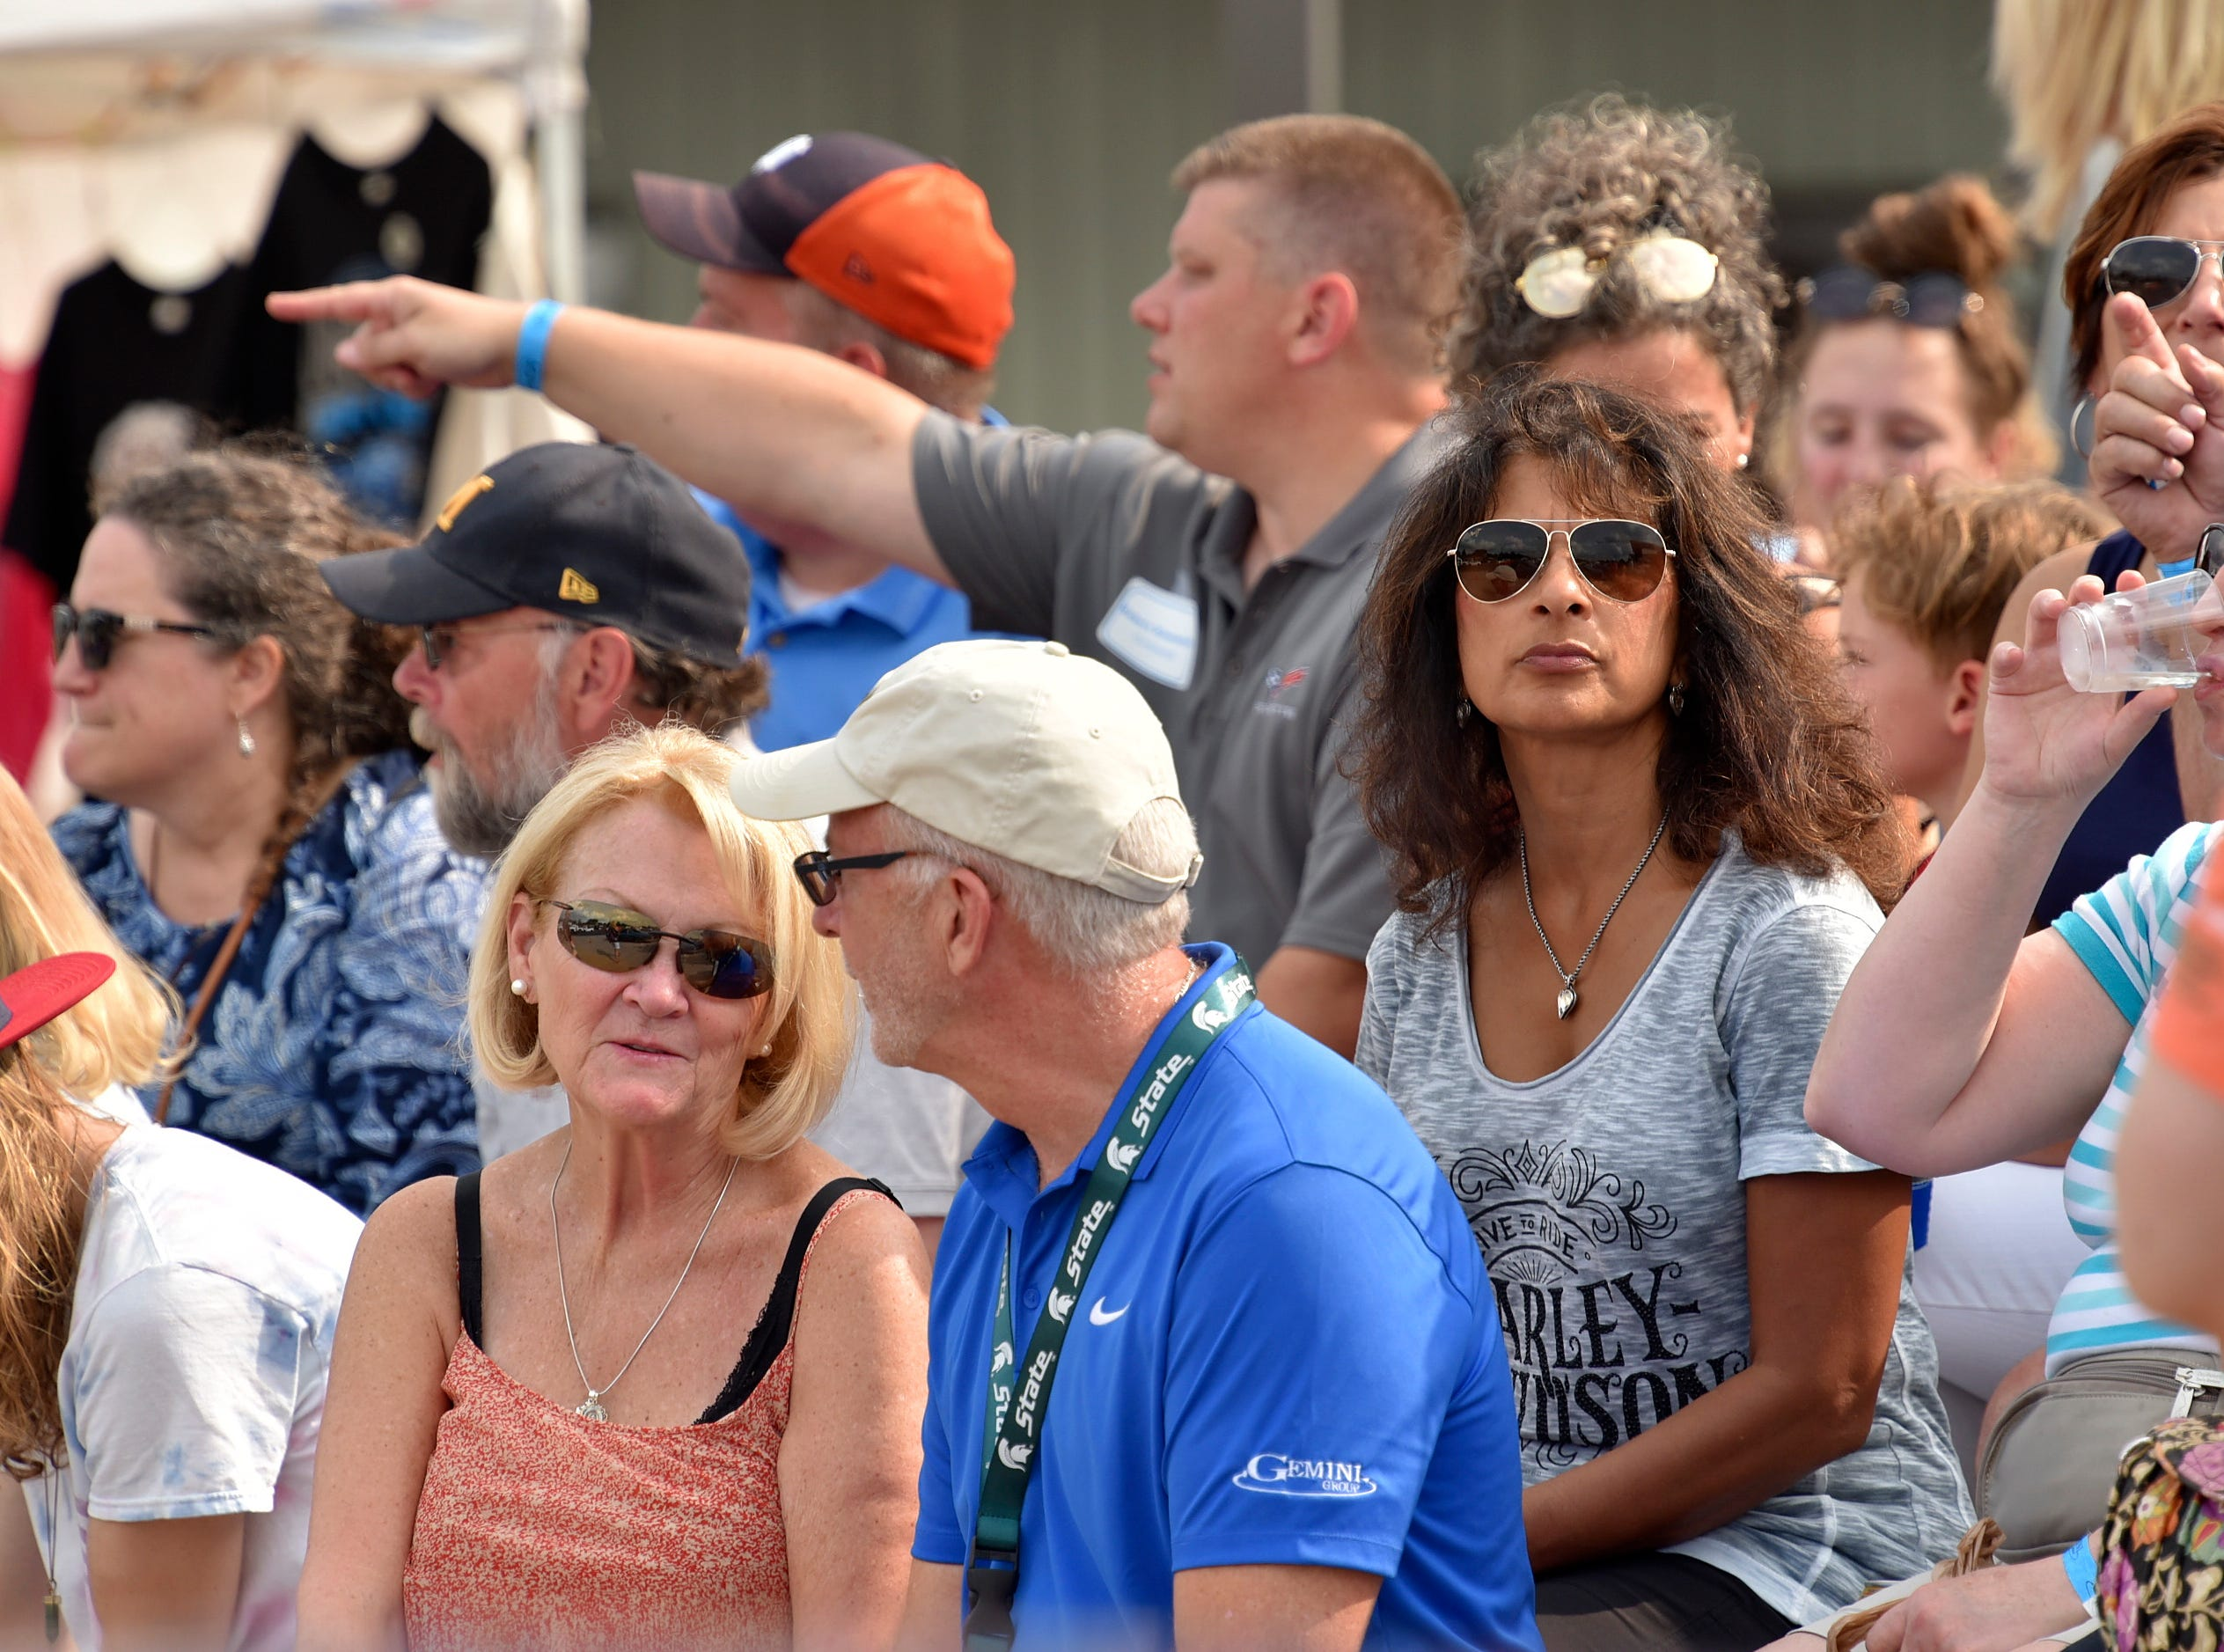 Spectators watch the Dream Cruise from the bleachers in front of  The Original Pancake House in Royal Oak.